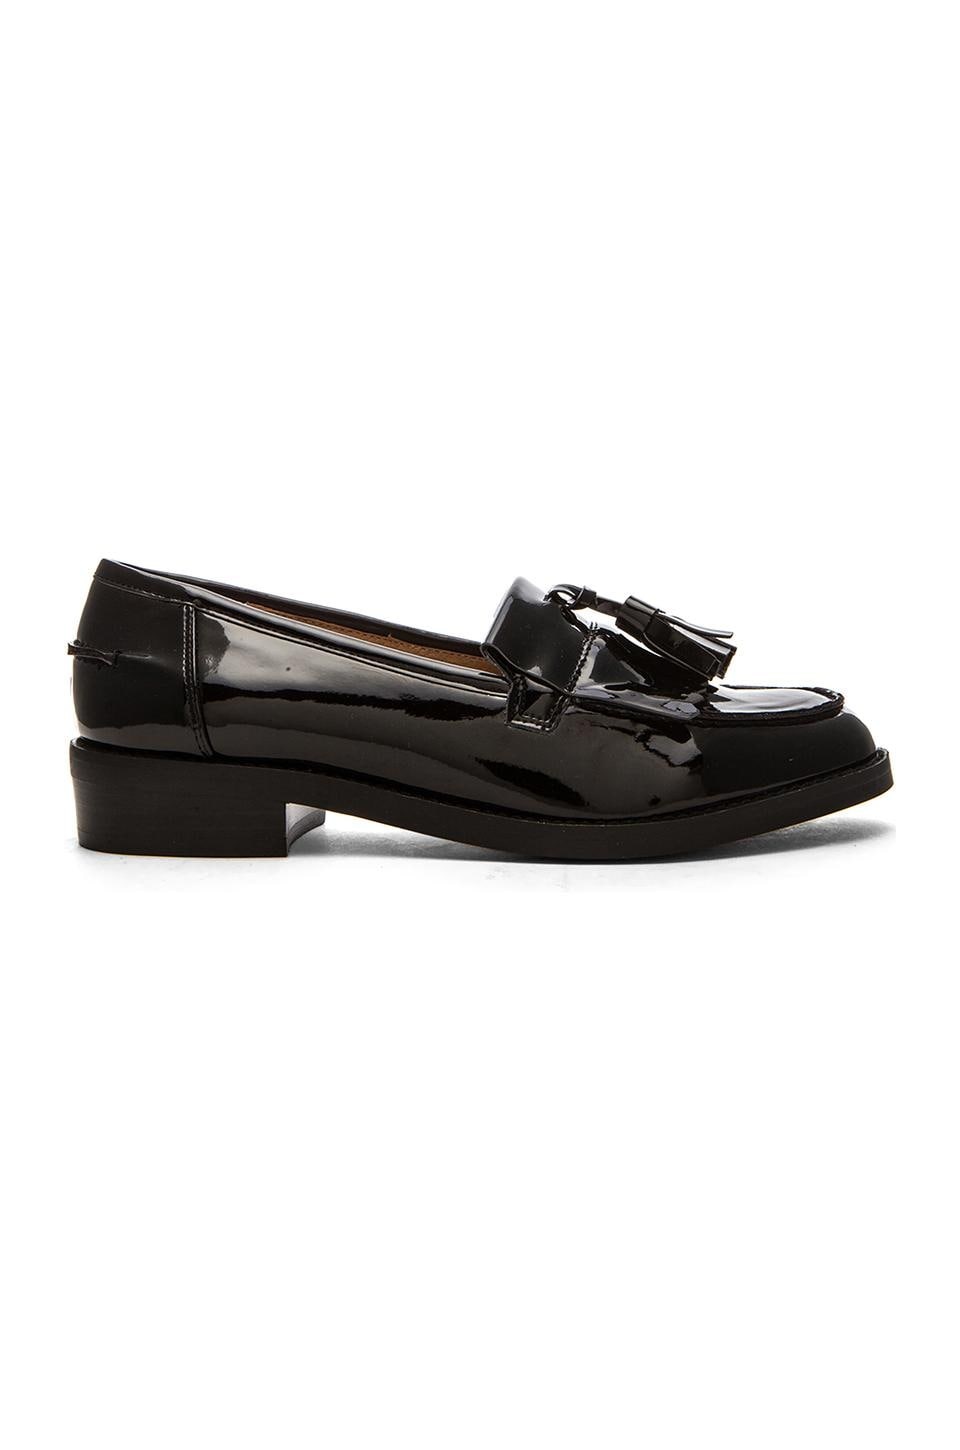 Steve Madden Meelia Loafer in Black